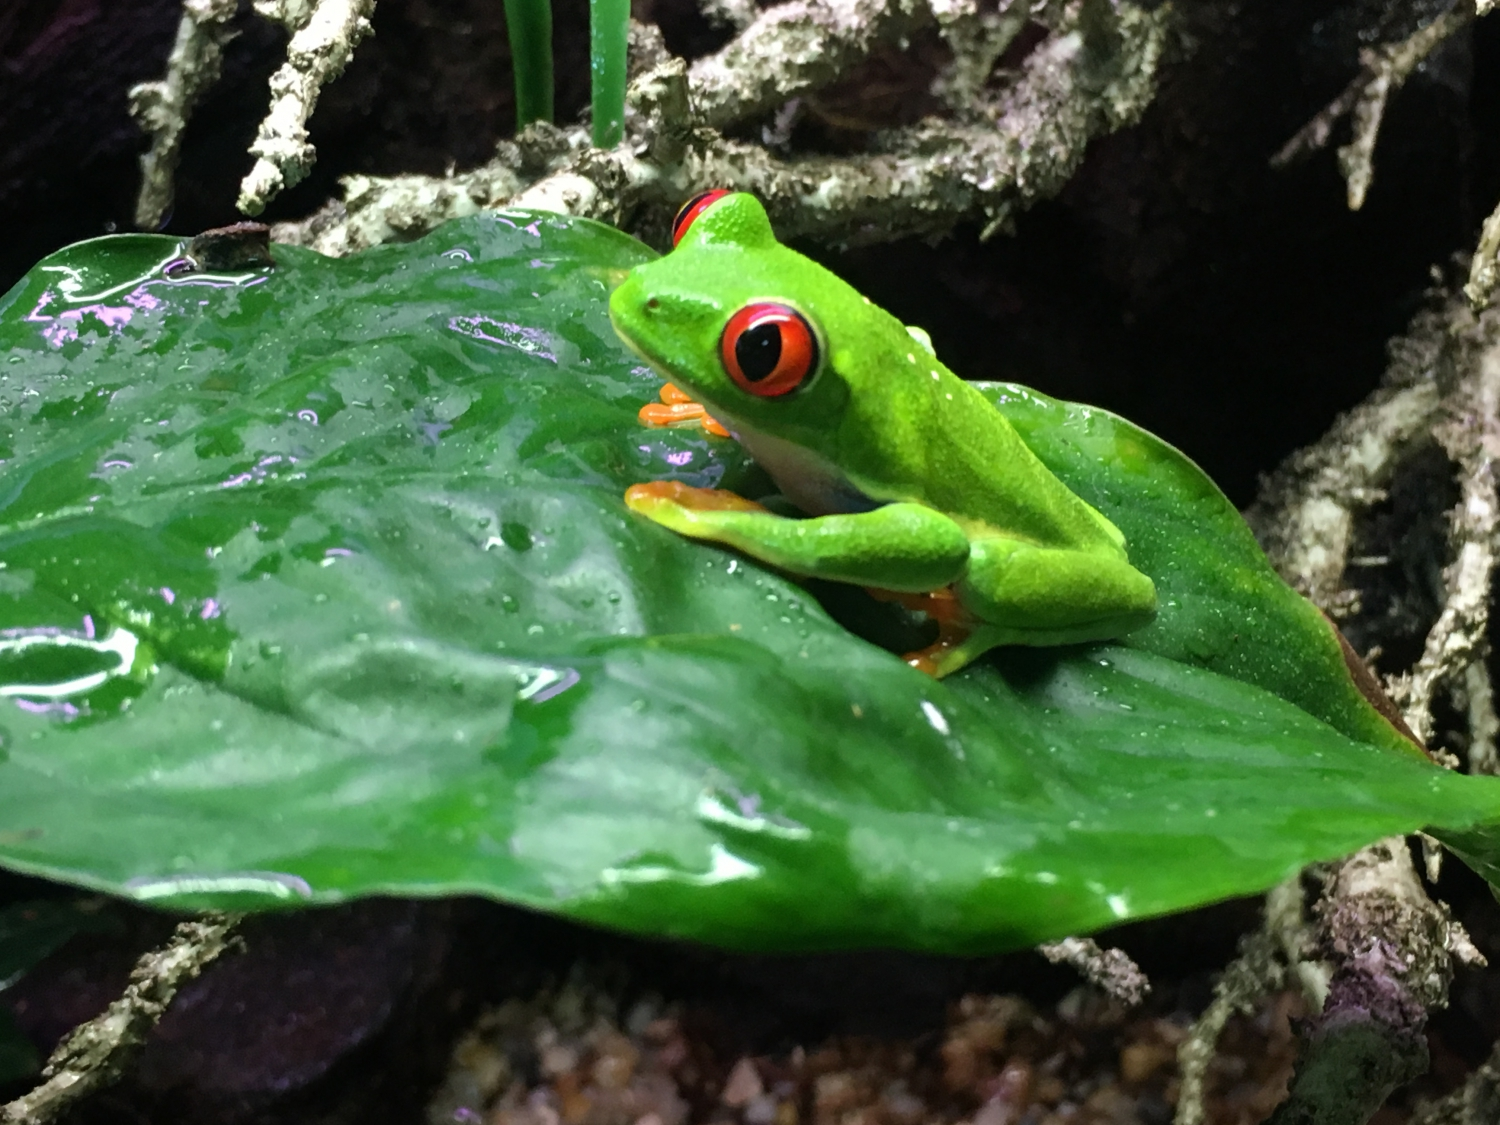 Meet the devil frogs and red-eyed frogs at Terra Natura Benidorm